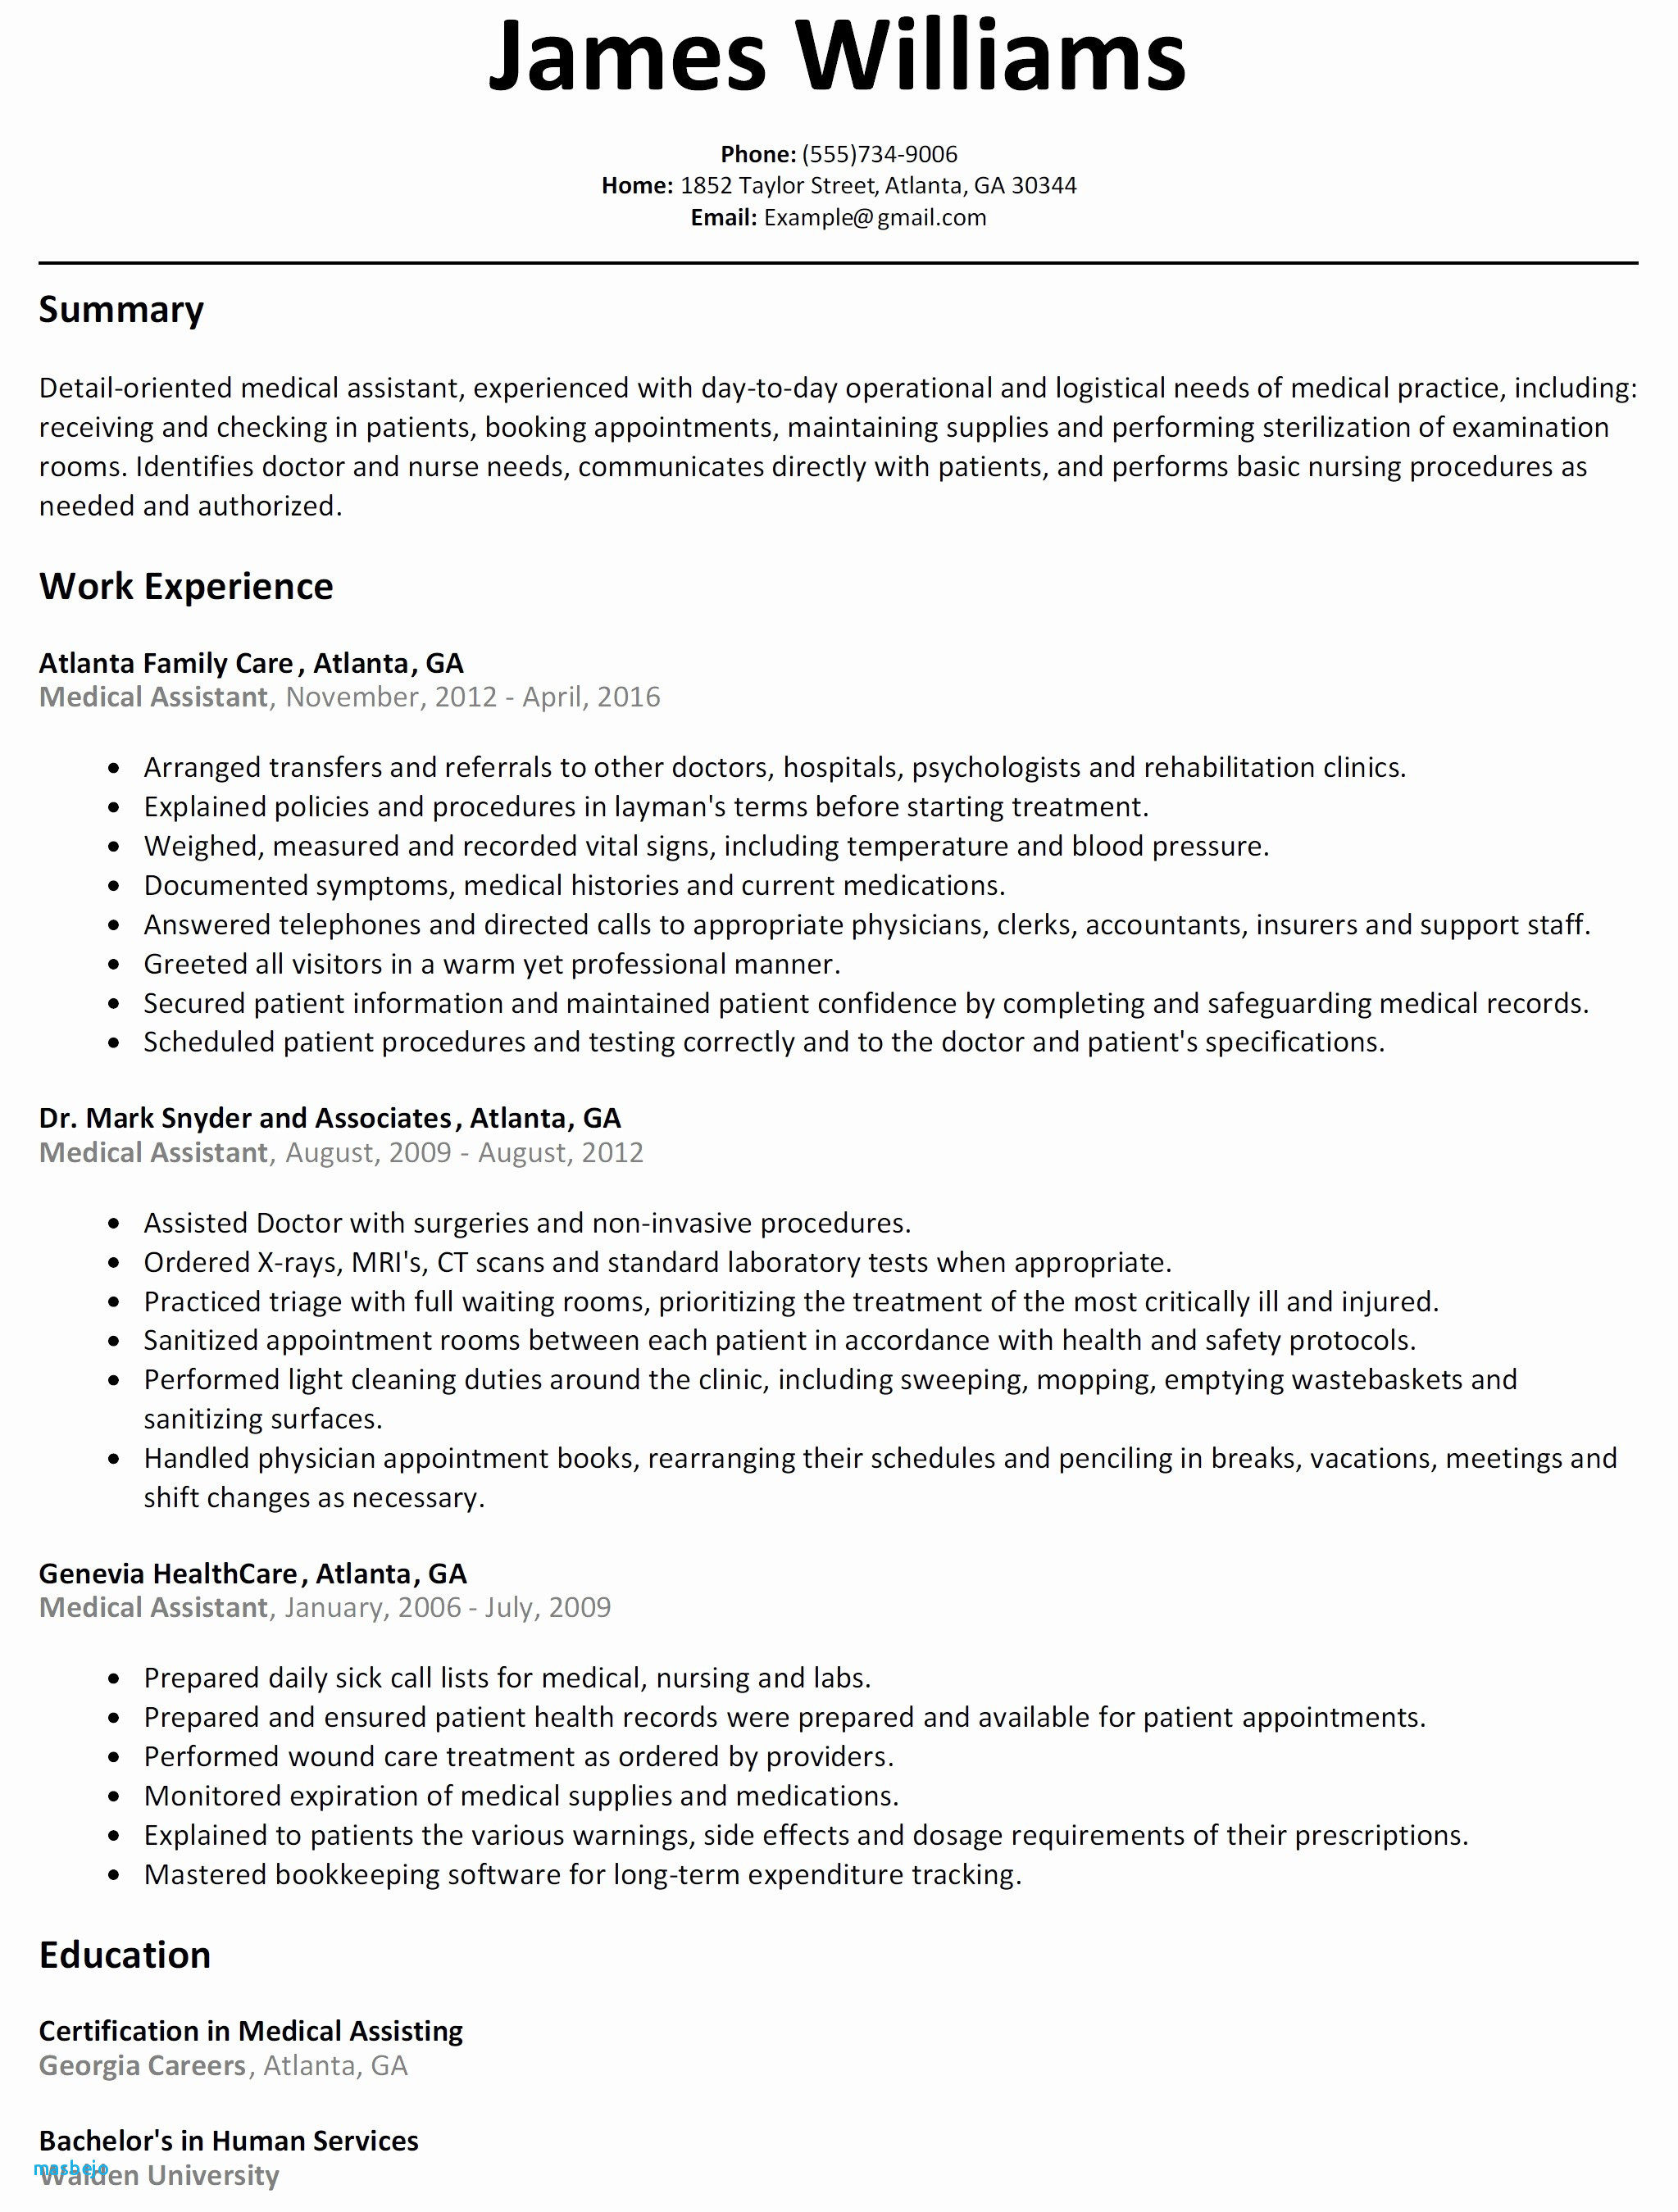 Home Care Nurse Resume - Experienced Nurse Resume Examples Resume for Nurse Elegant New Nurse